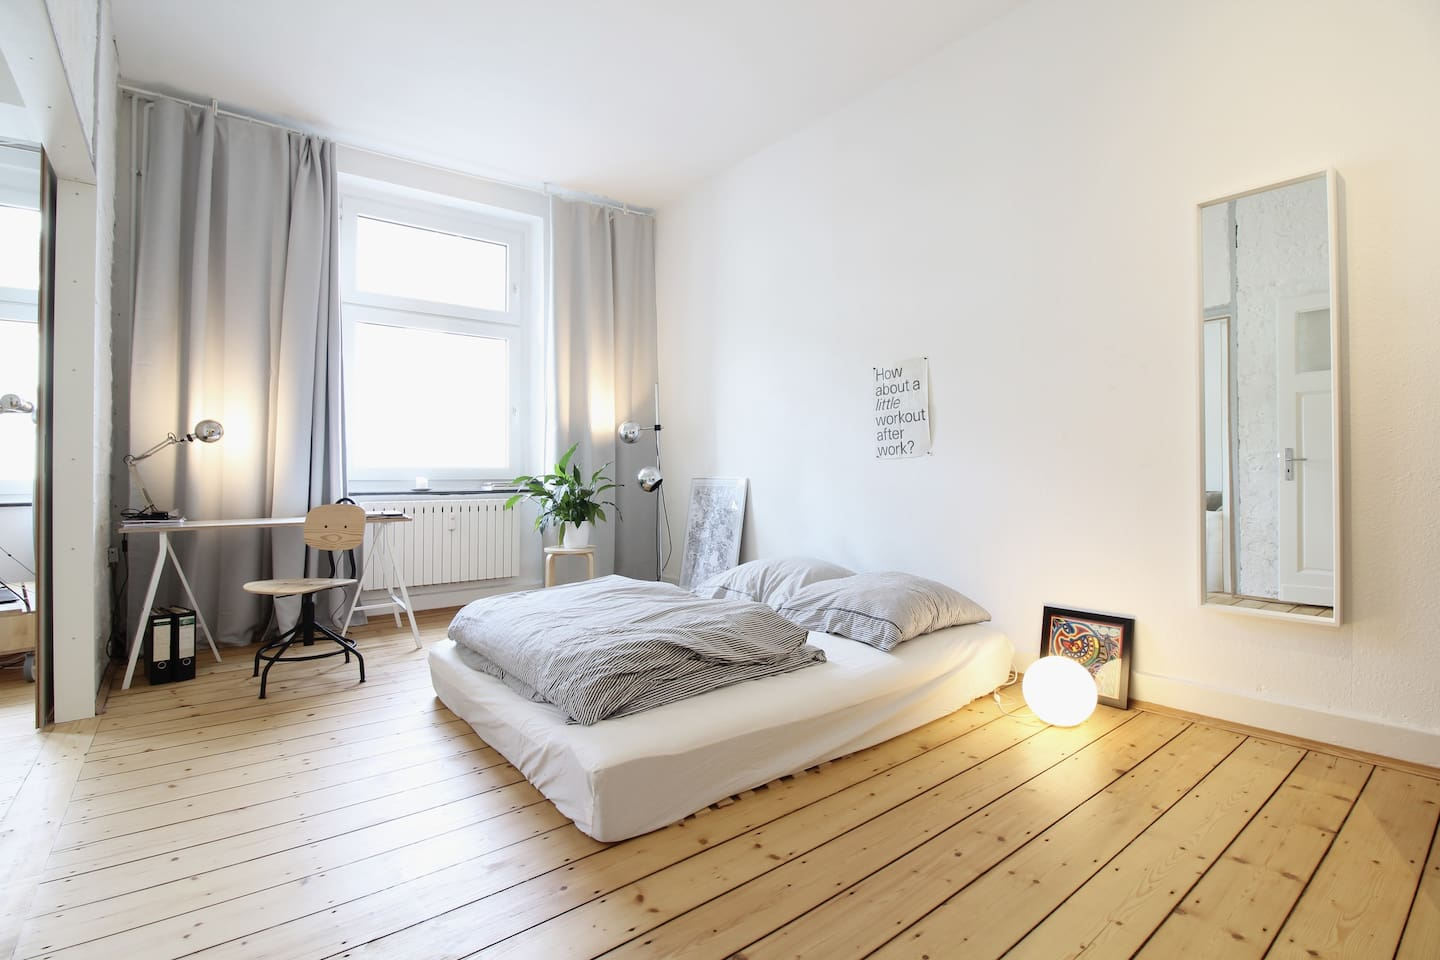 The bedroom with a minimalistic design promises restful nights after a long busy day.